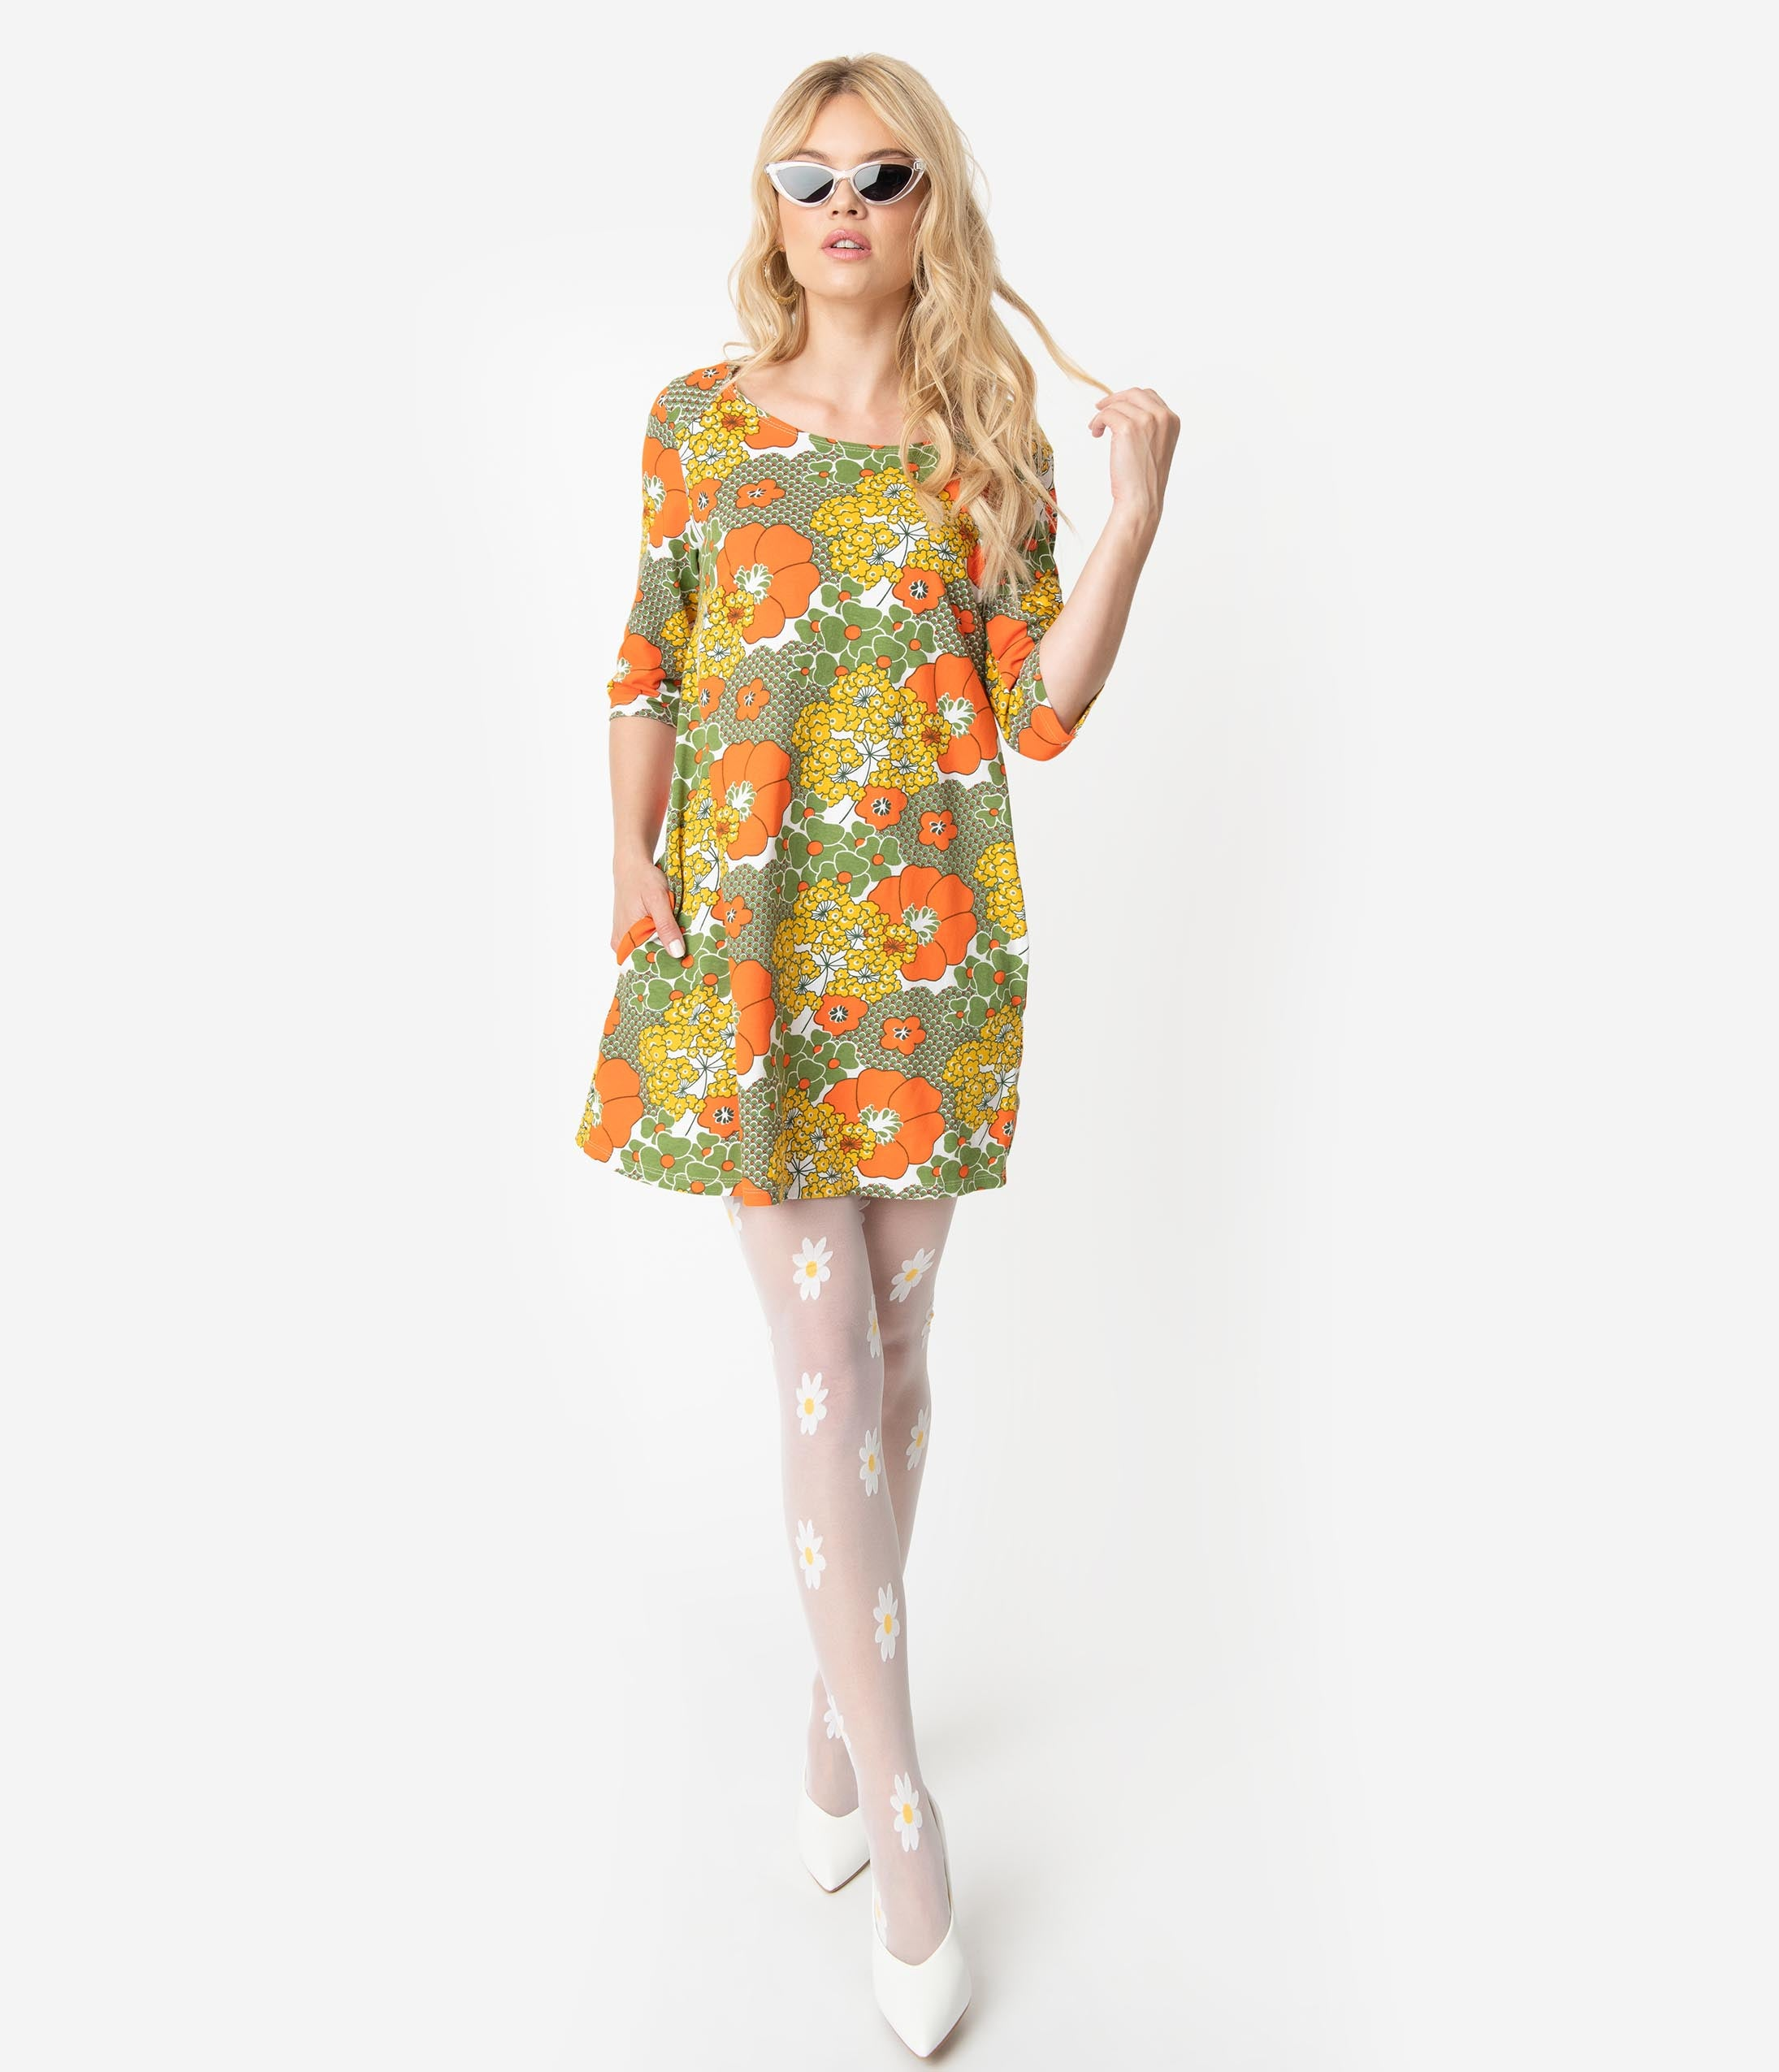 1960s Mad Men Dresses and Clothing Styles 1960S Style Olive Green  Orange Retro Floral Print Cotton Tunic Dress $58.00 AT vintagedancer.com